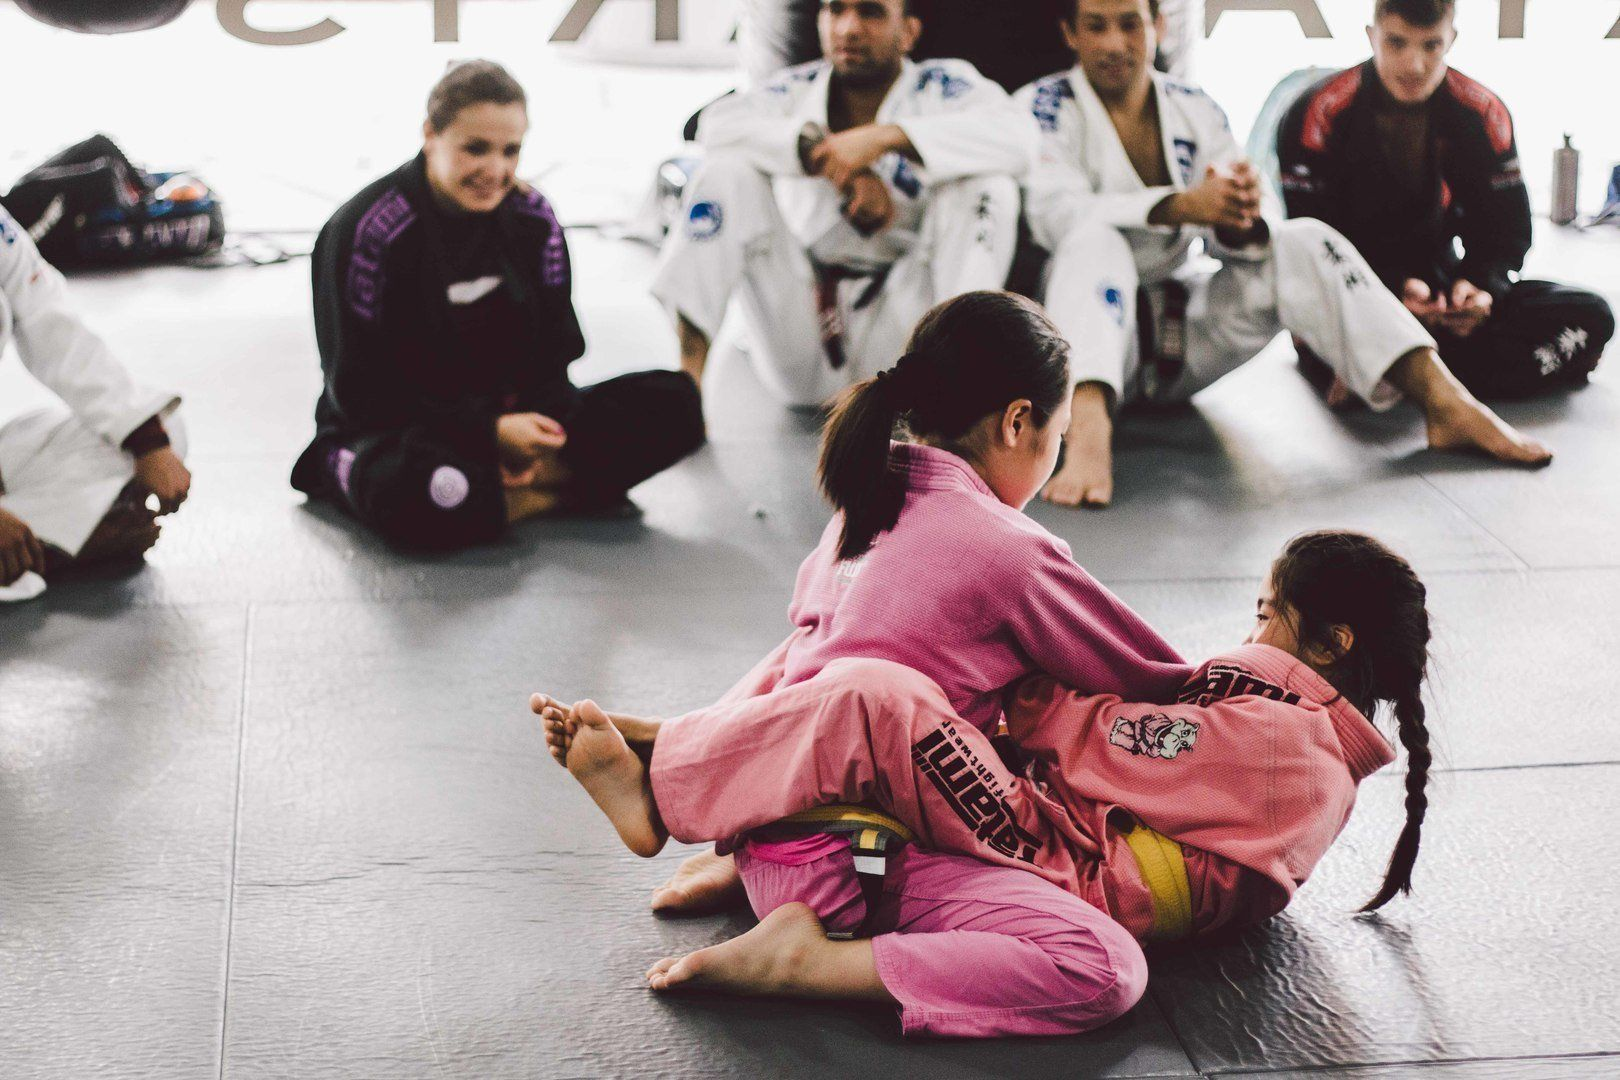 Brazilian Jiu-Jitsu enables a smaller person to overcome a bigger, stronger opponent.